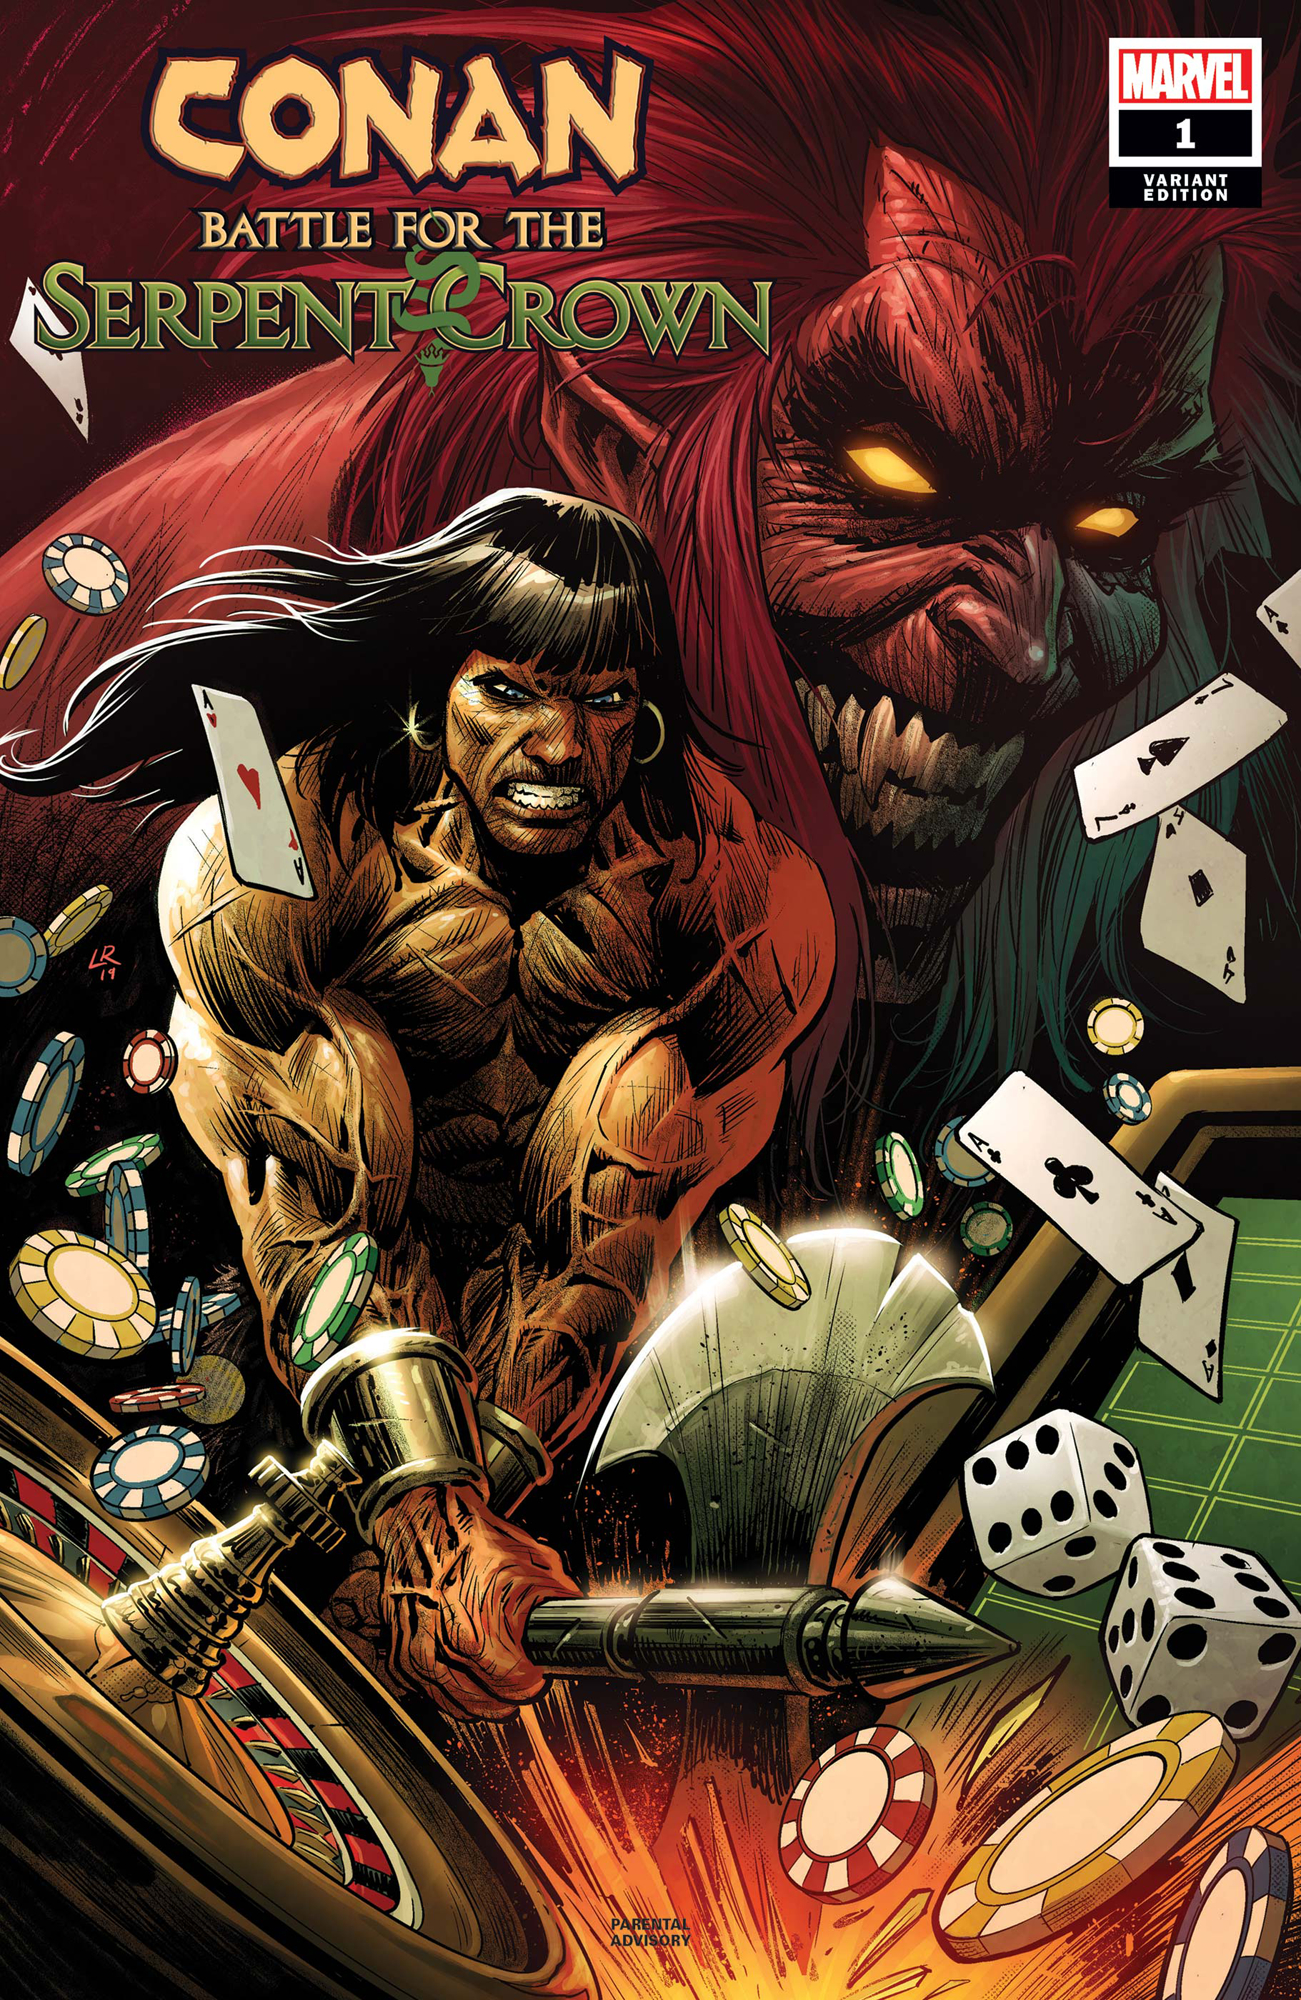 CONAN BATTLE FOR SERPENT CROWN #1 (OF 5) LUKE ROSS VAR